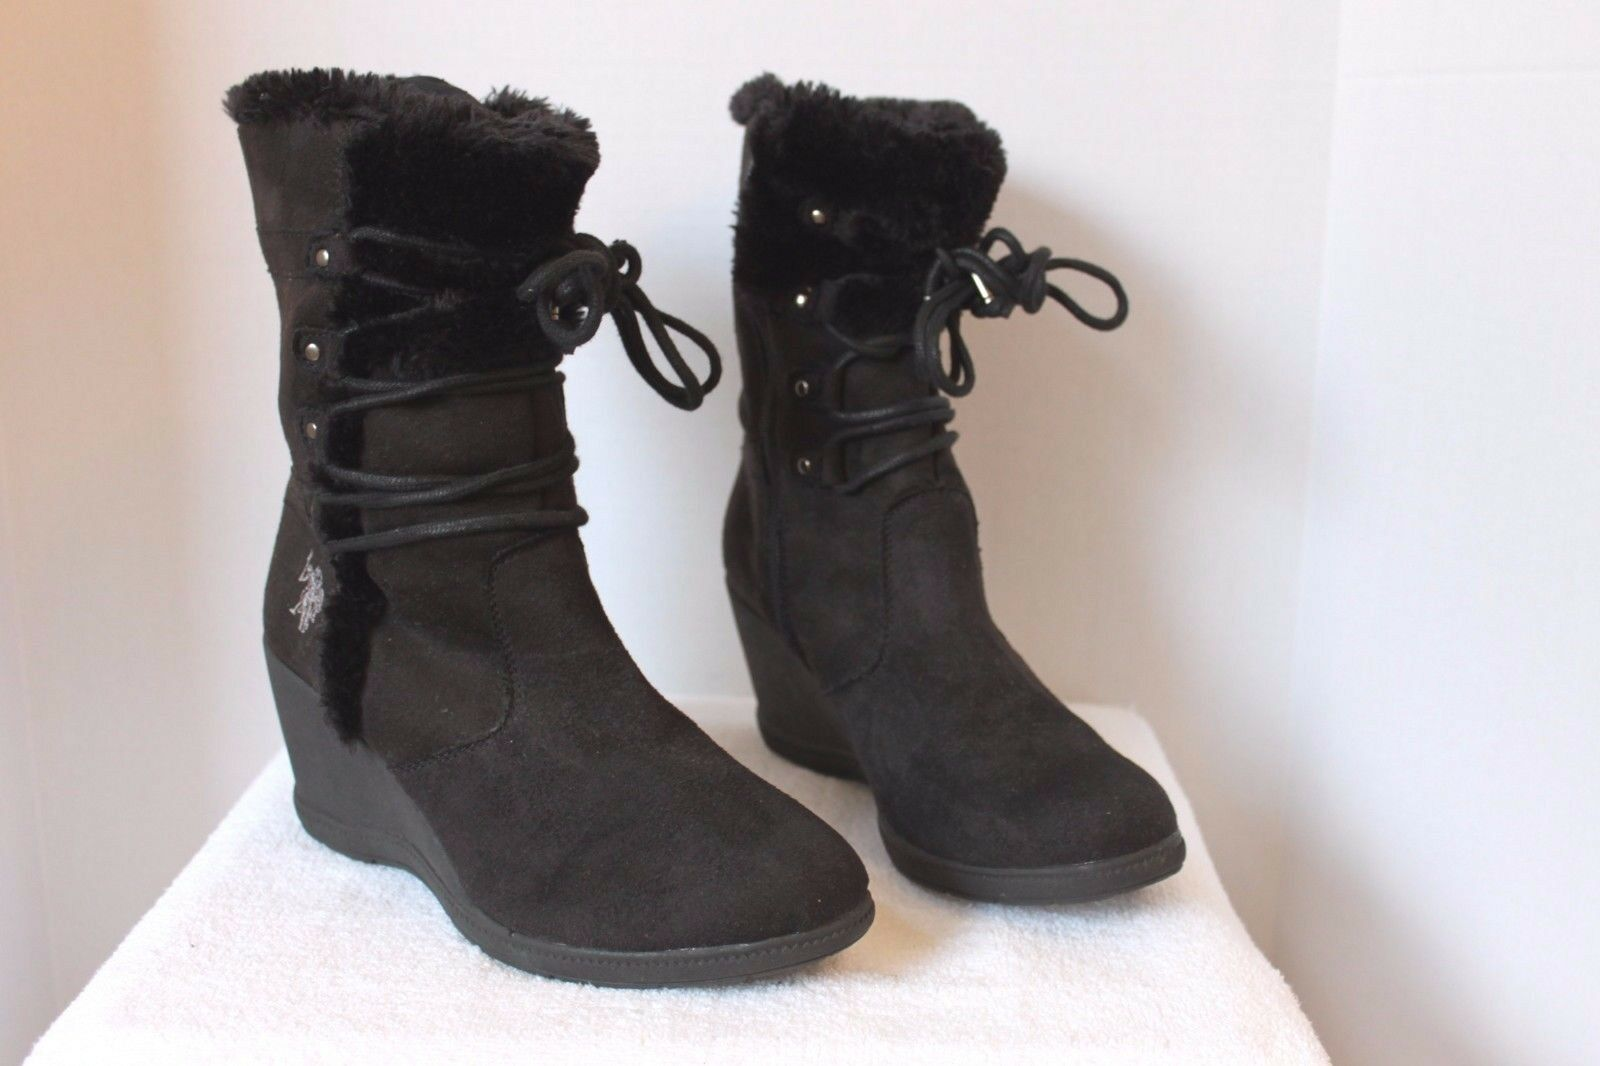 U.S POLO ASSN Karina Black Wedge Boots with Faux Fur Trim Womens Size 9 GUC